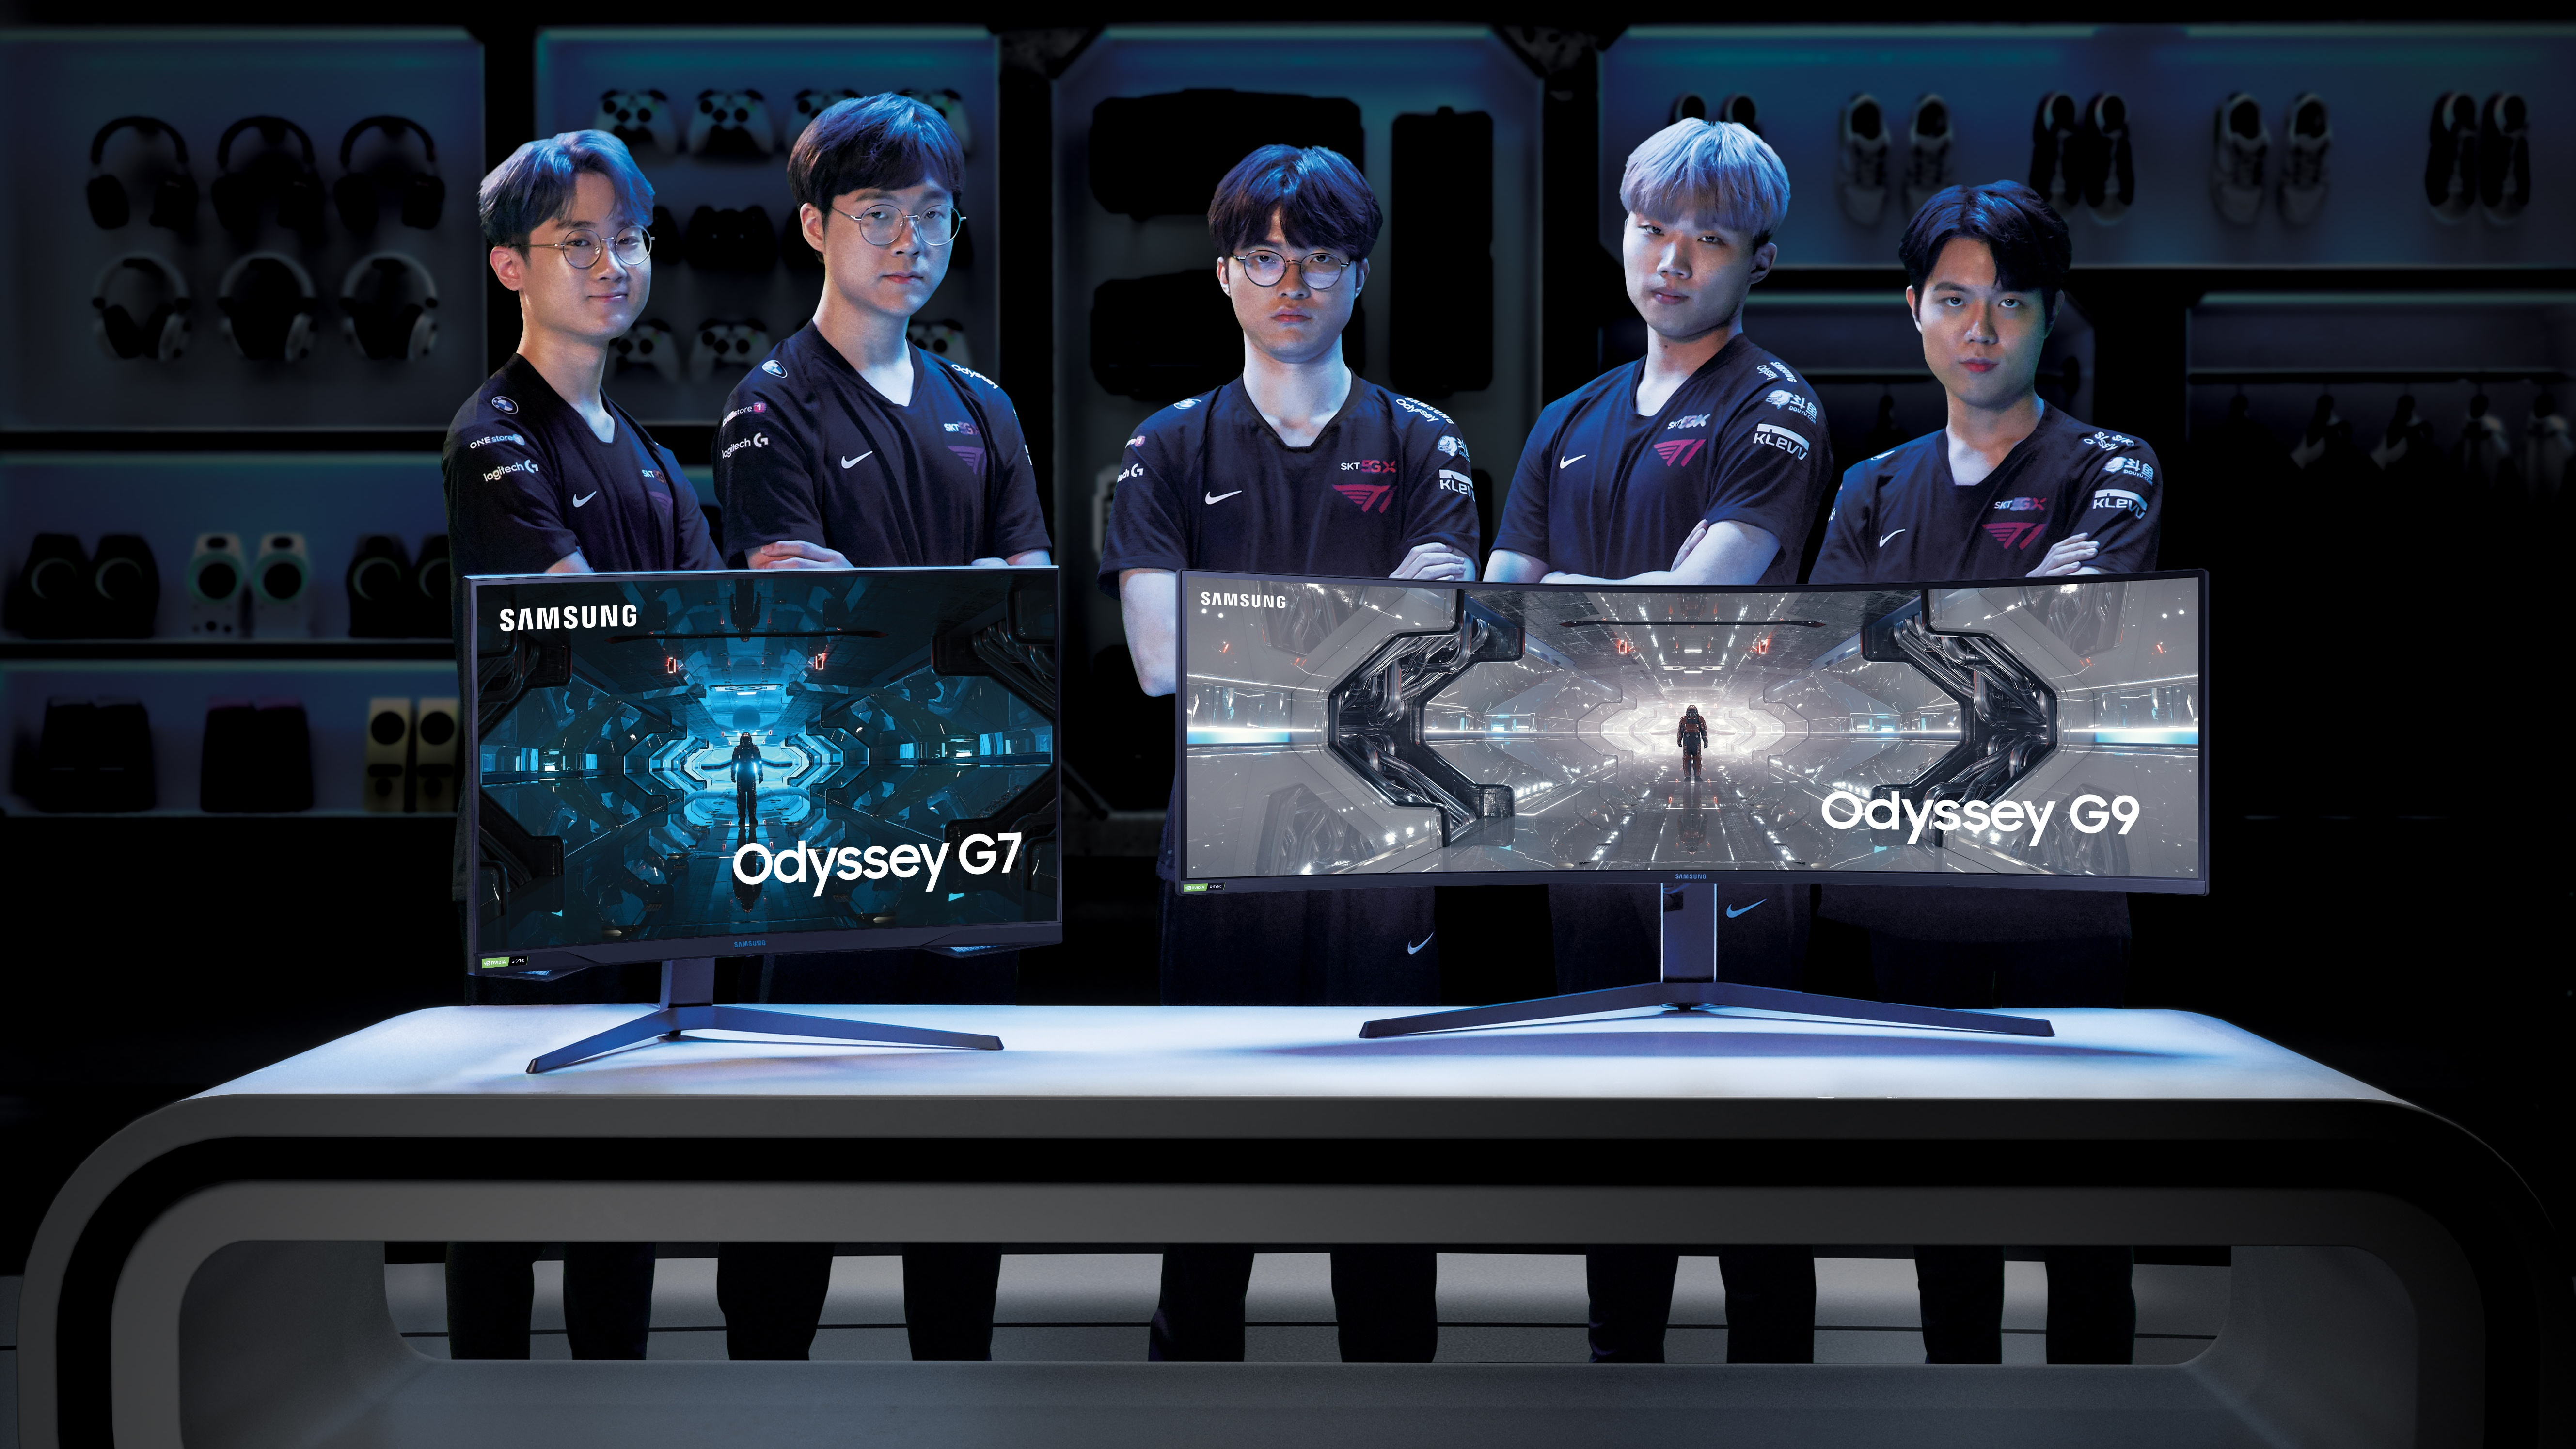 T1 League of Legends Team: 'Effort' Sangho Lee, 'Teddy' Jinsung Park, 'Faker' Sanghyeok Lee, 'Canna' Changdong Kim, 'Cuzz' Uchan Mun with Samsung Odyssey Monitors